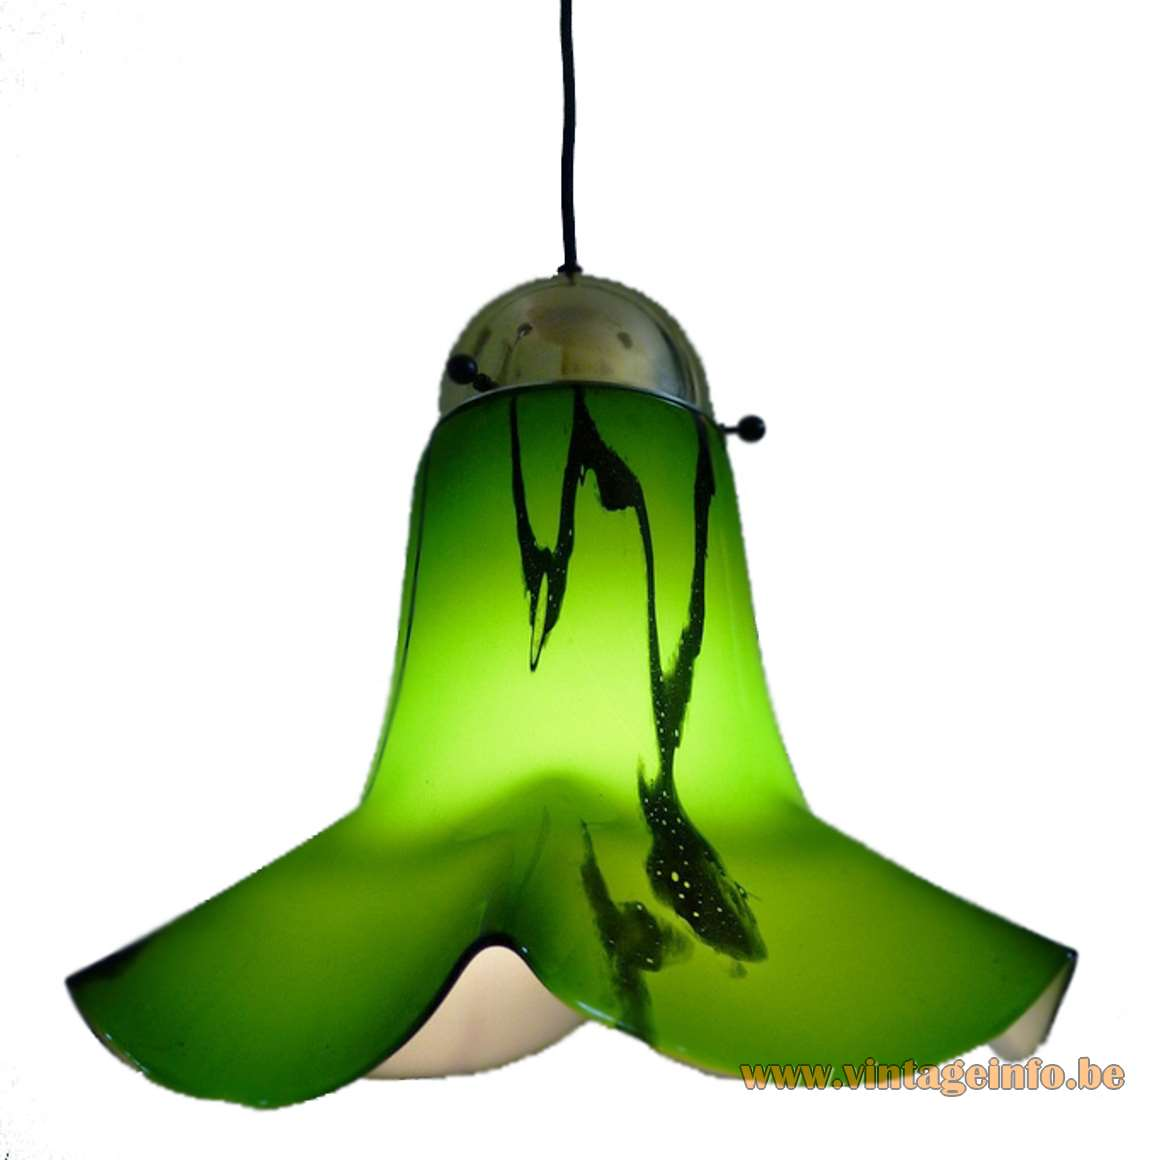 Peill & Putzler Pendant Light